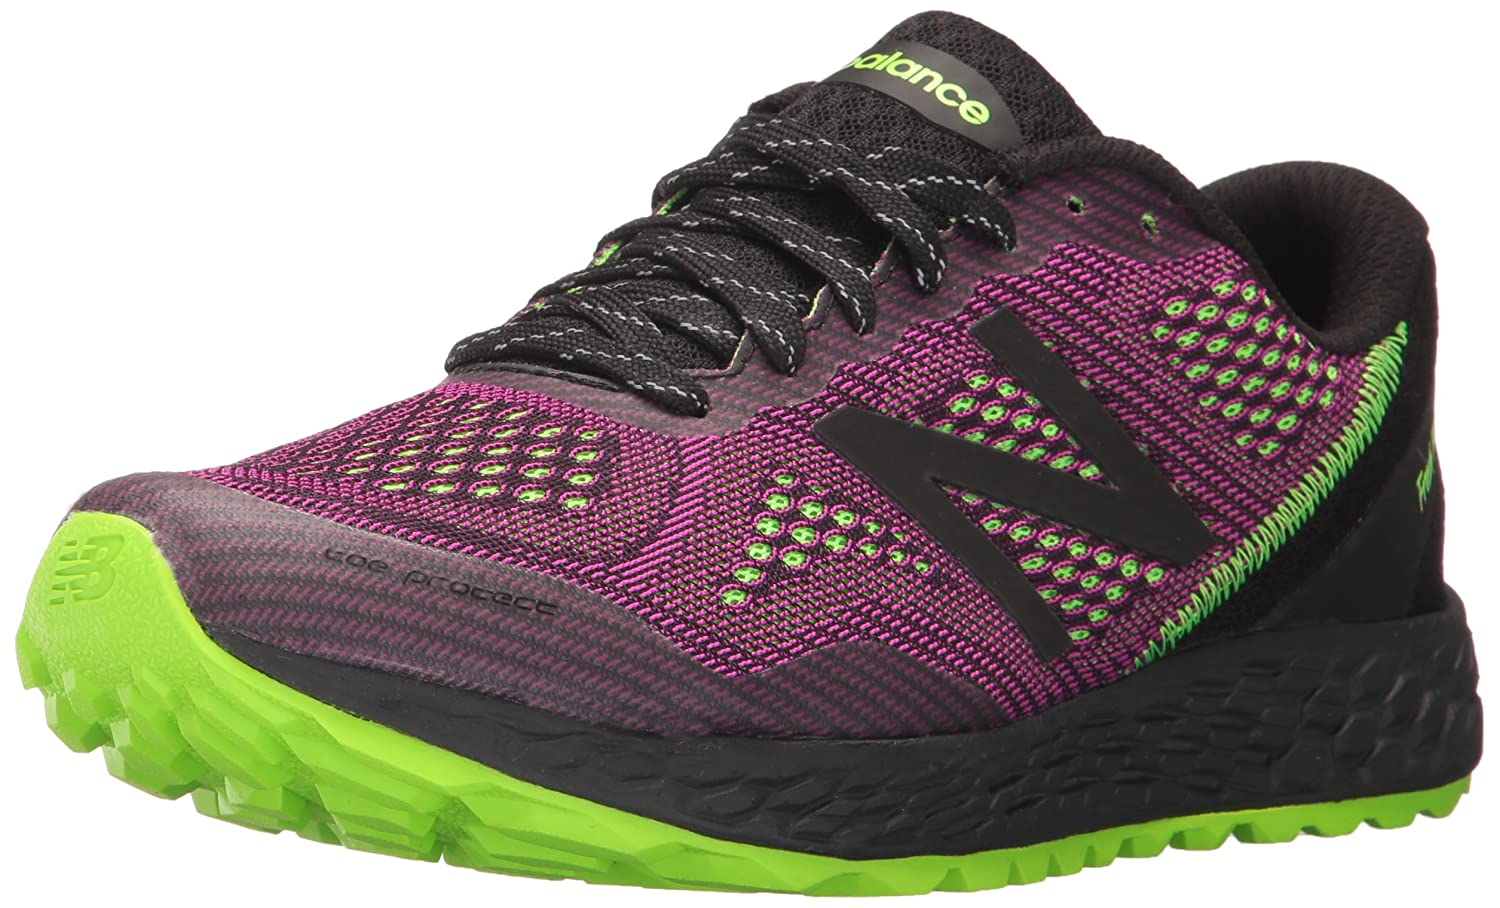 New Balance Women's Gobiv2 Running Shoe B01N77XLMC 11 B(M) US|Poisonberry/Black